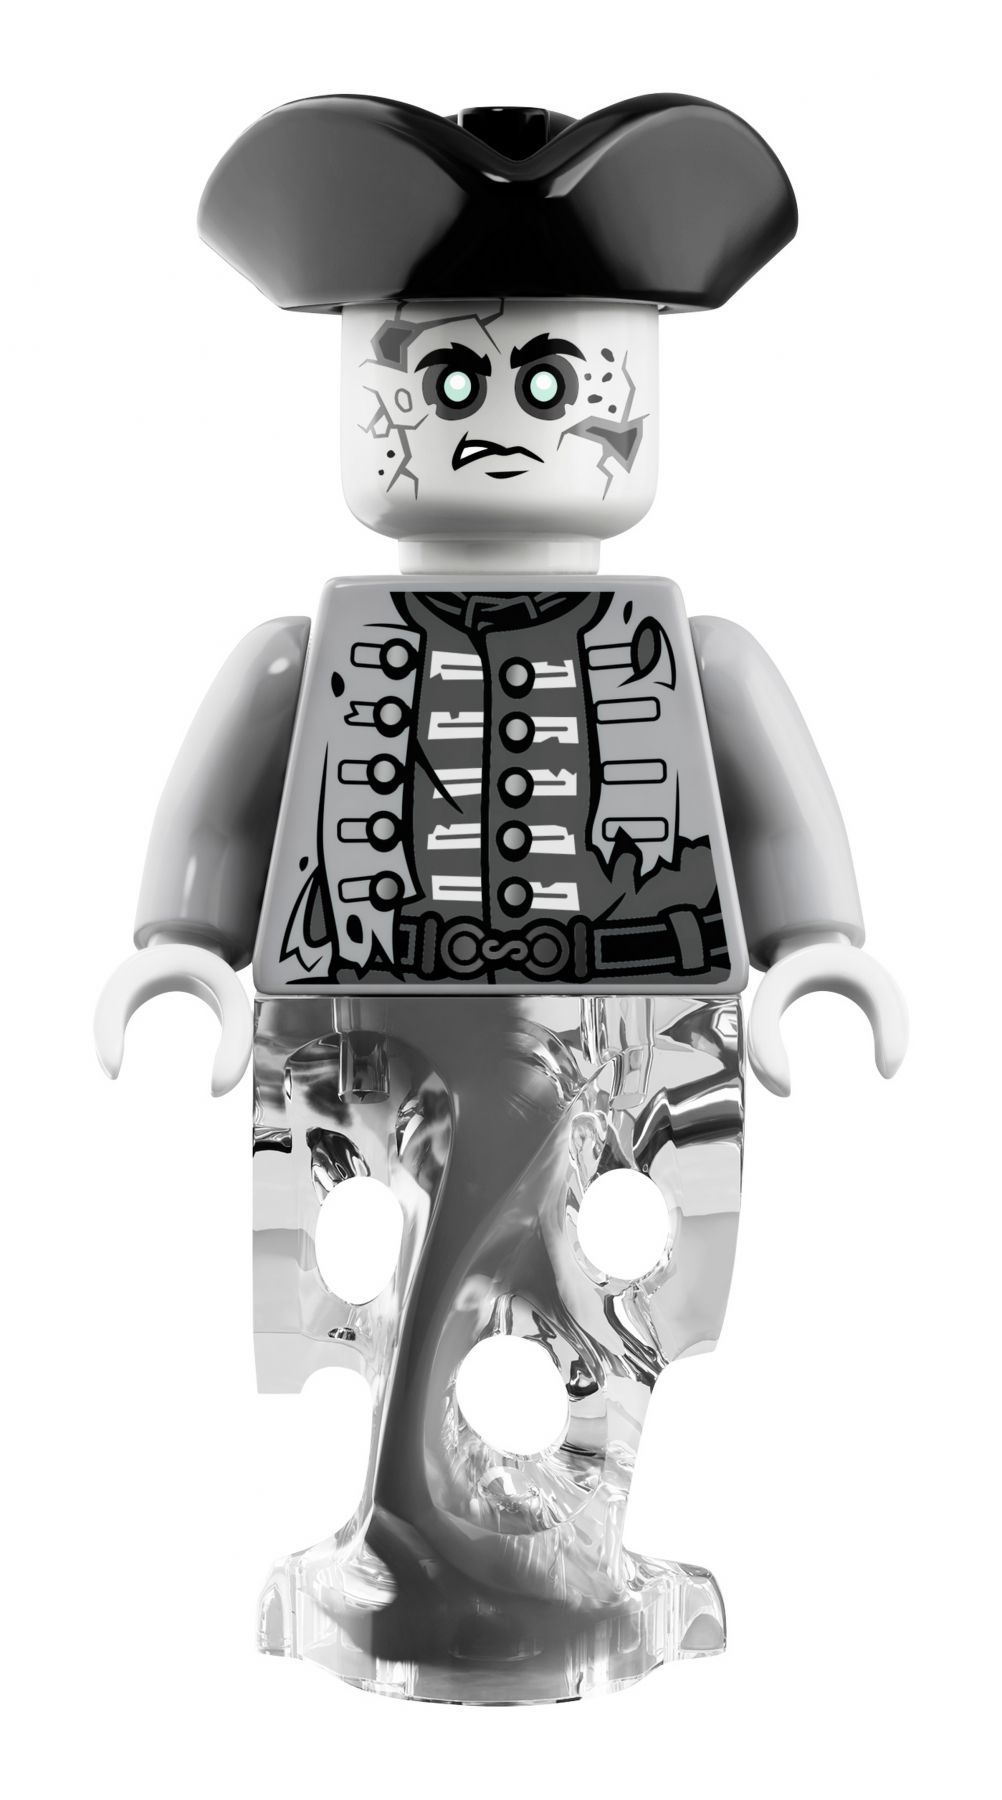 LEGO Advanced Models 71042 Silent Mary LEGO_71042_alt10.jpg